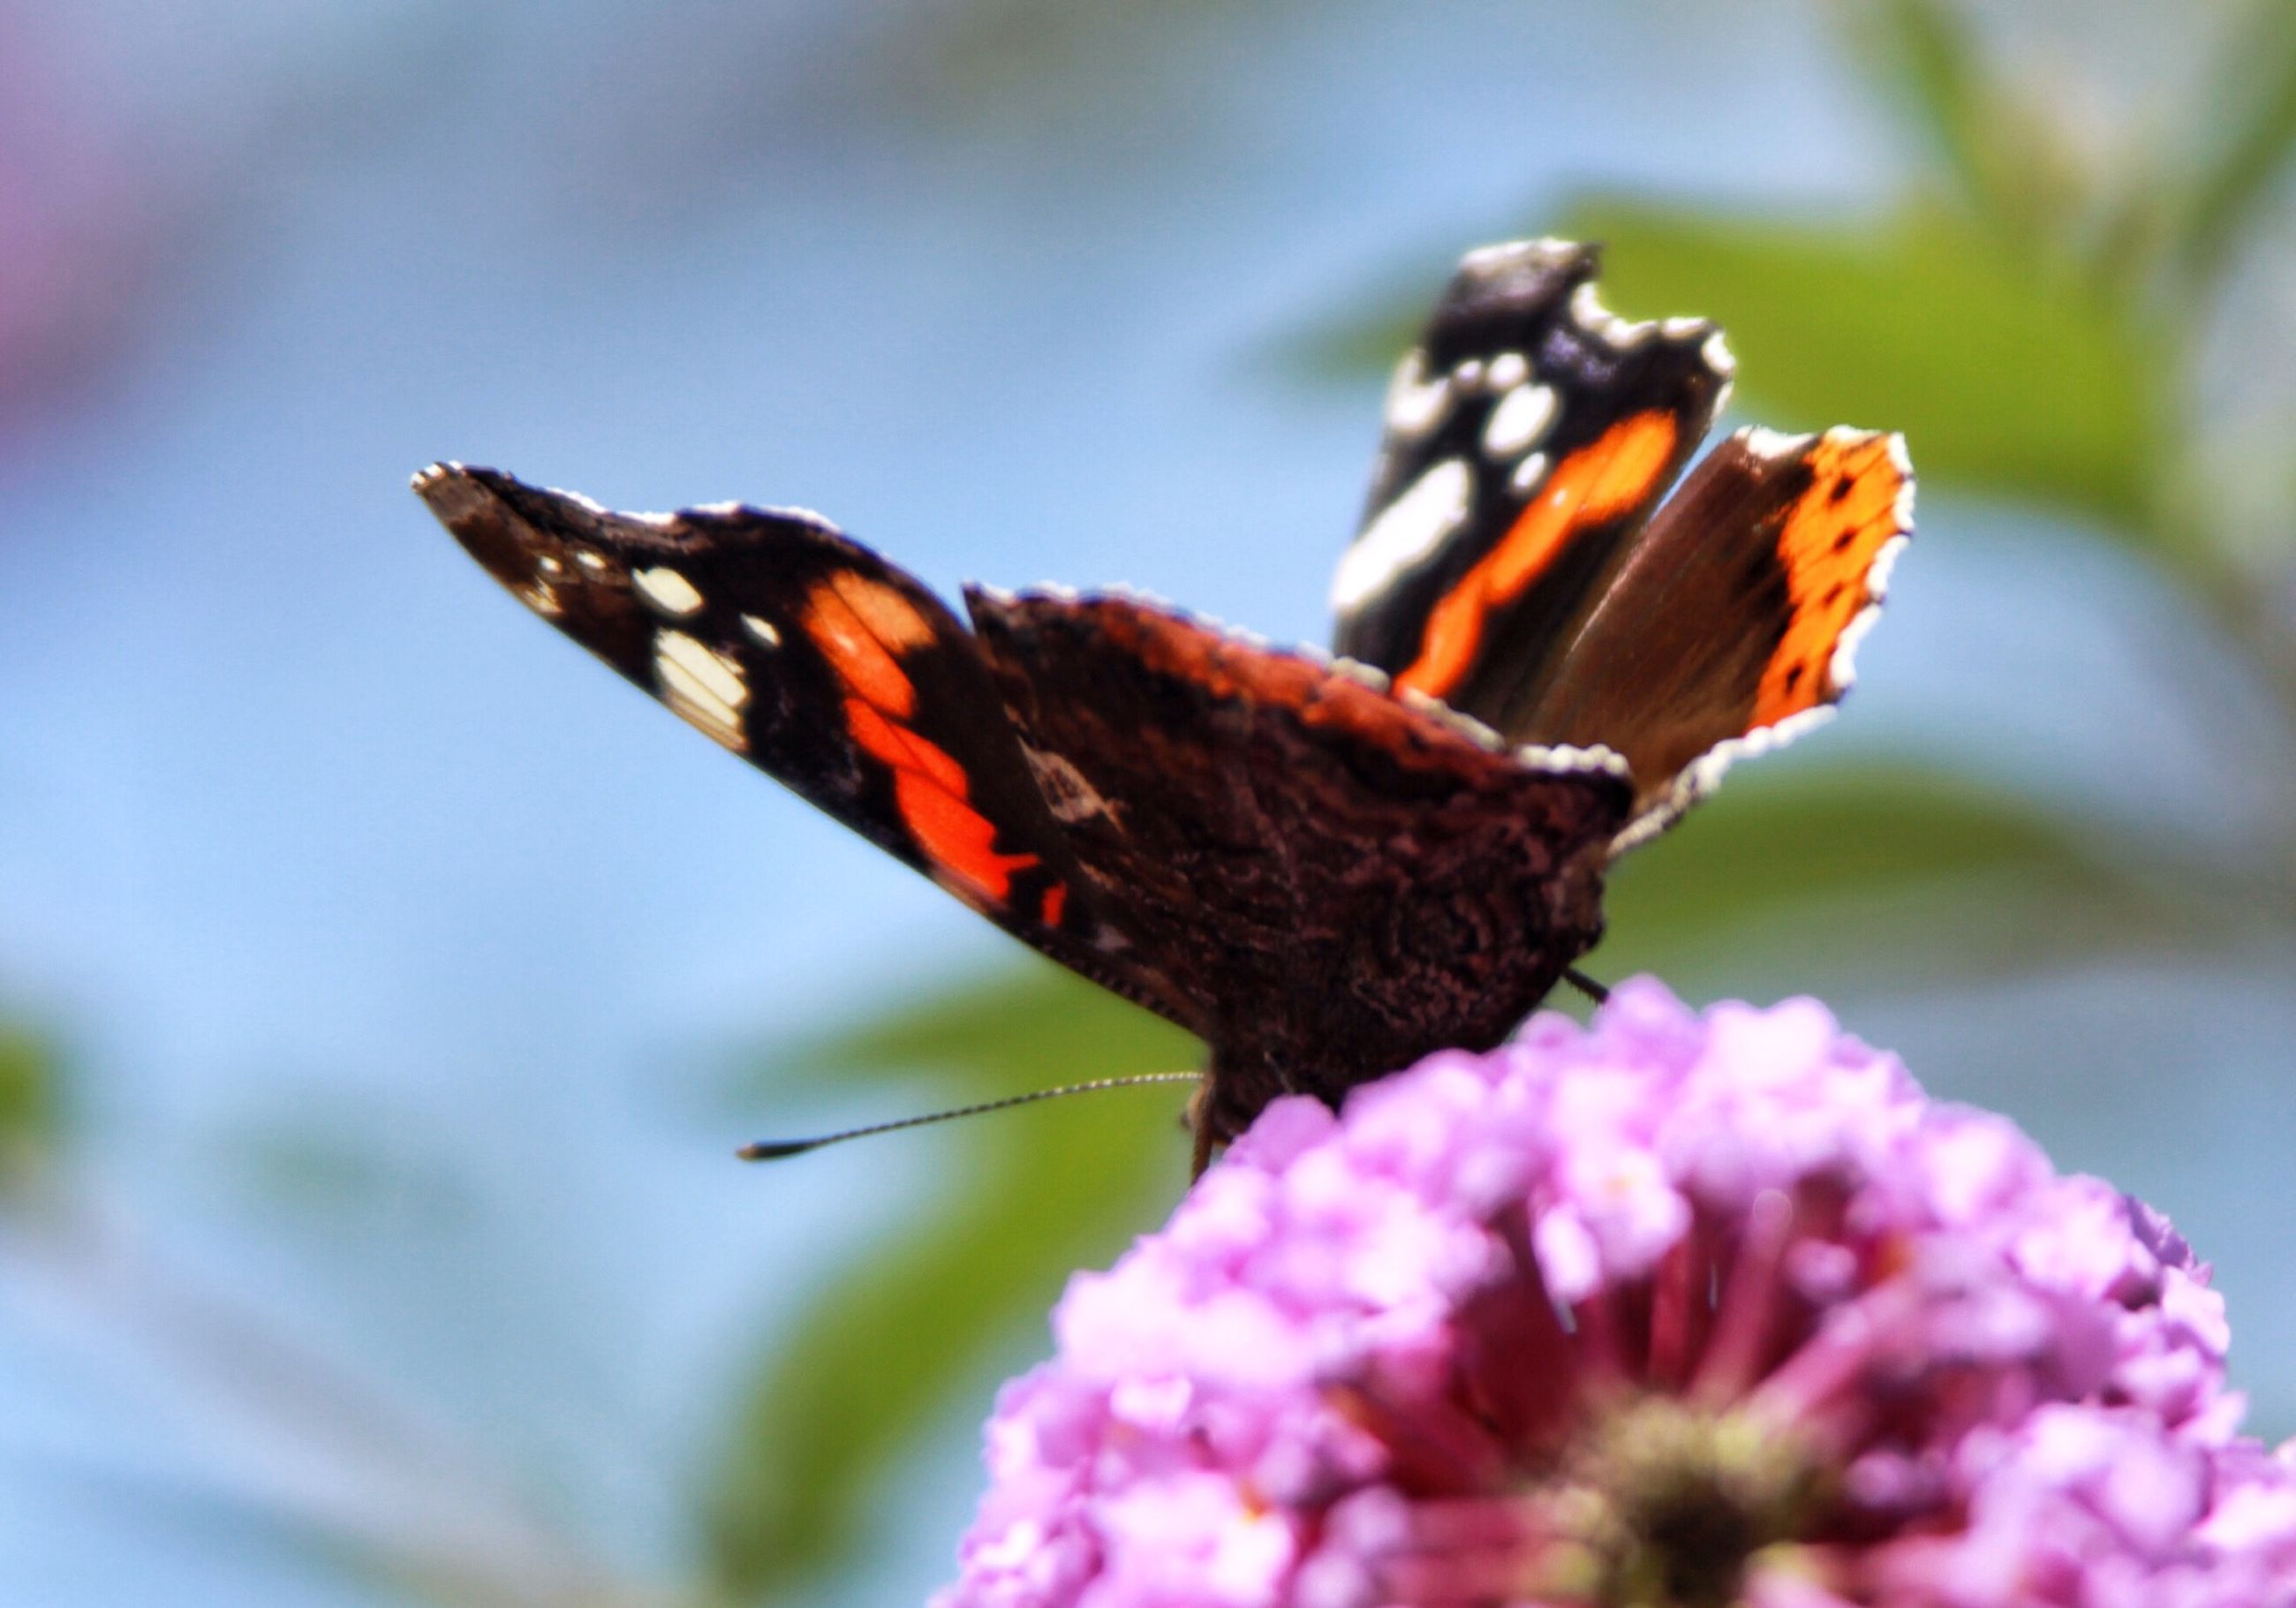 close-up, flower, focus on foreground, fragility, beauty in nature, nature, freshness, petal, season, selective focus, insect, growth, natural pattern, butterfly, day, butterfly - insect, dry, outdoors, flower head, change